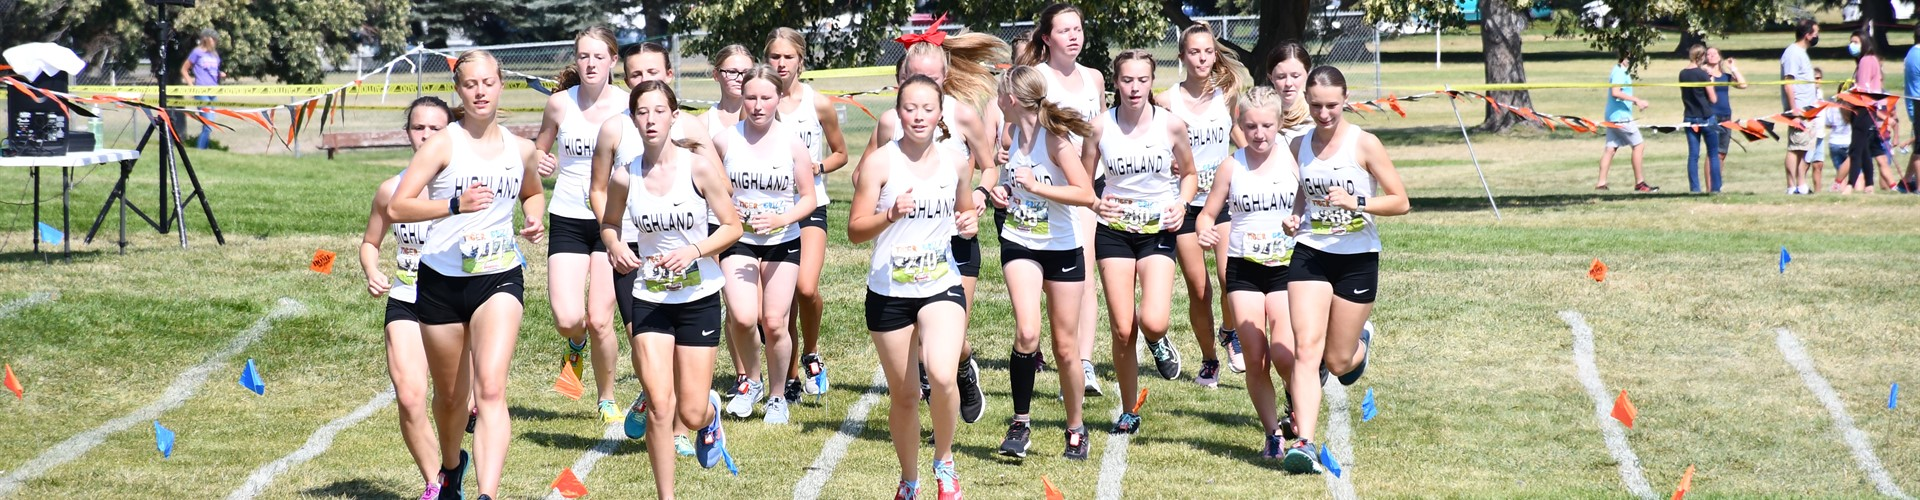 Cross Country women